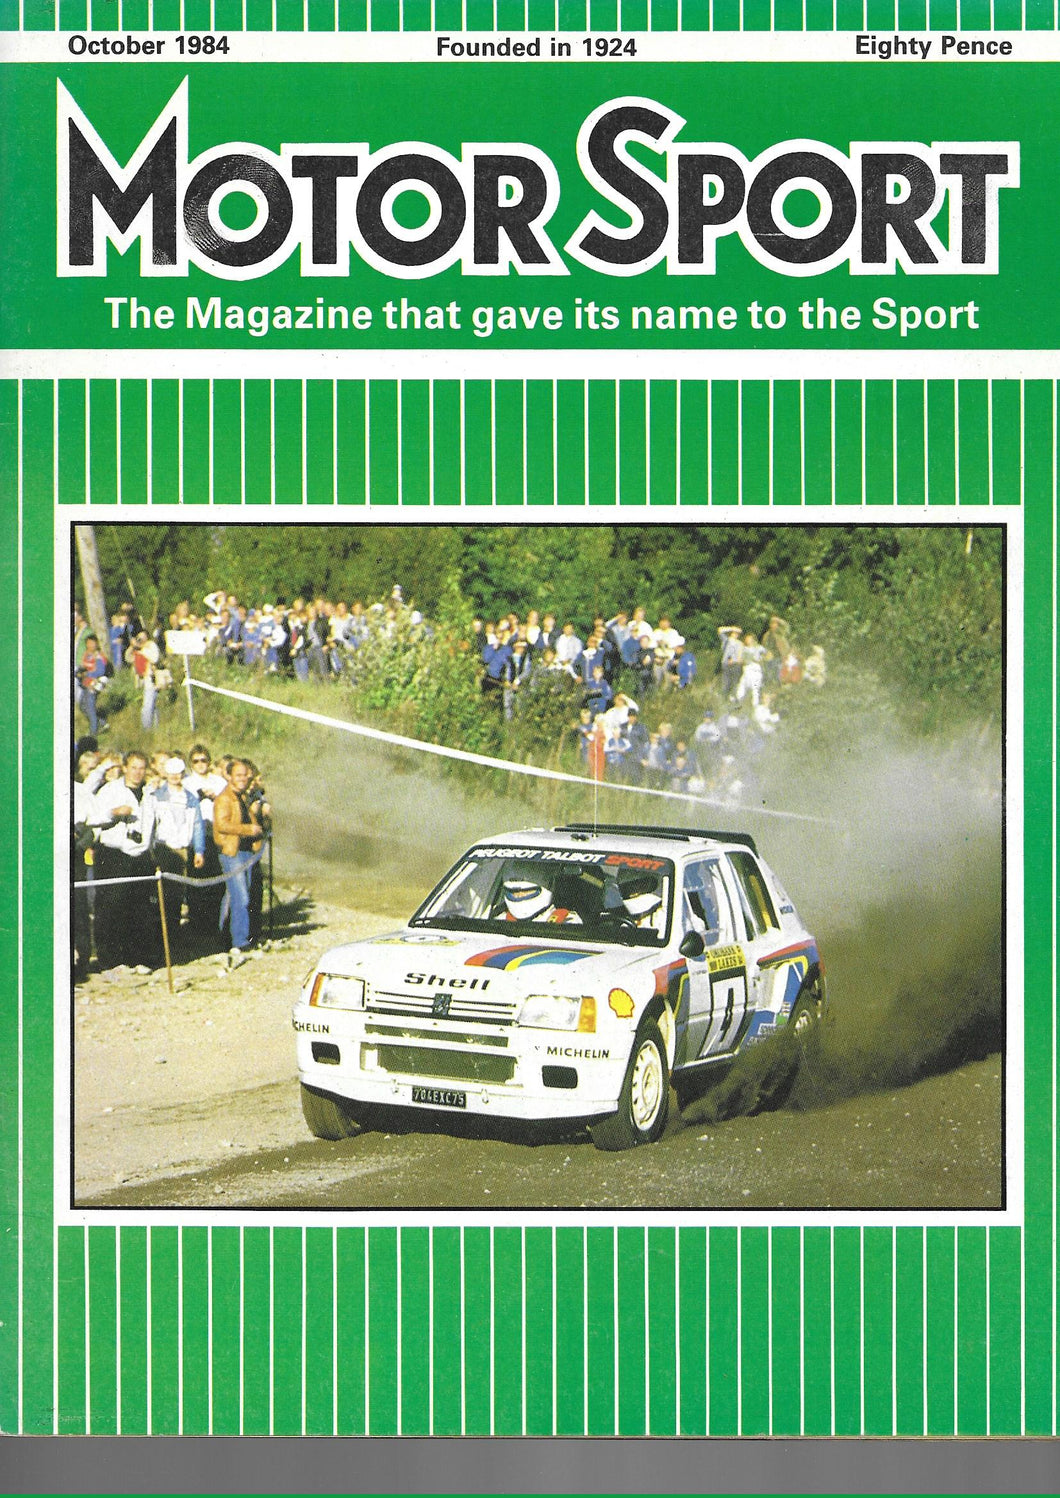 Motor Sport, Motorsport, Magazine, October 1984, Very Good Condition